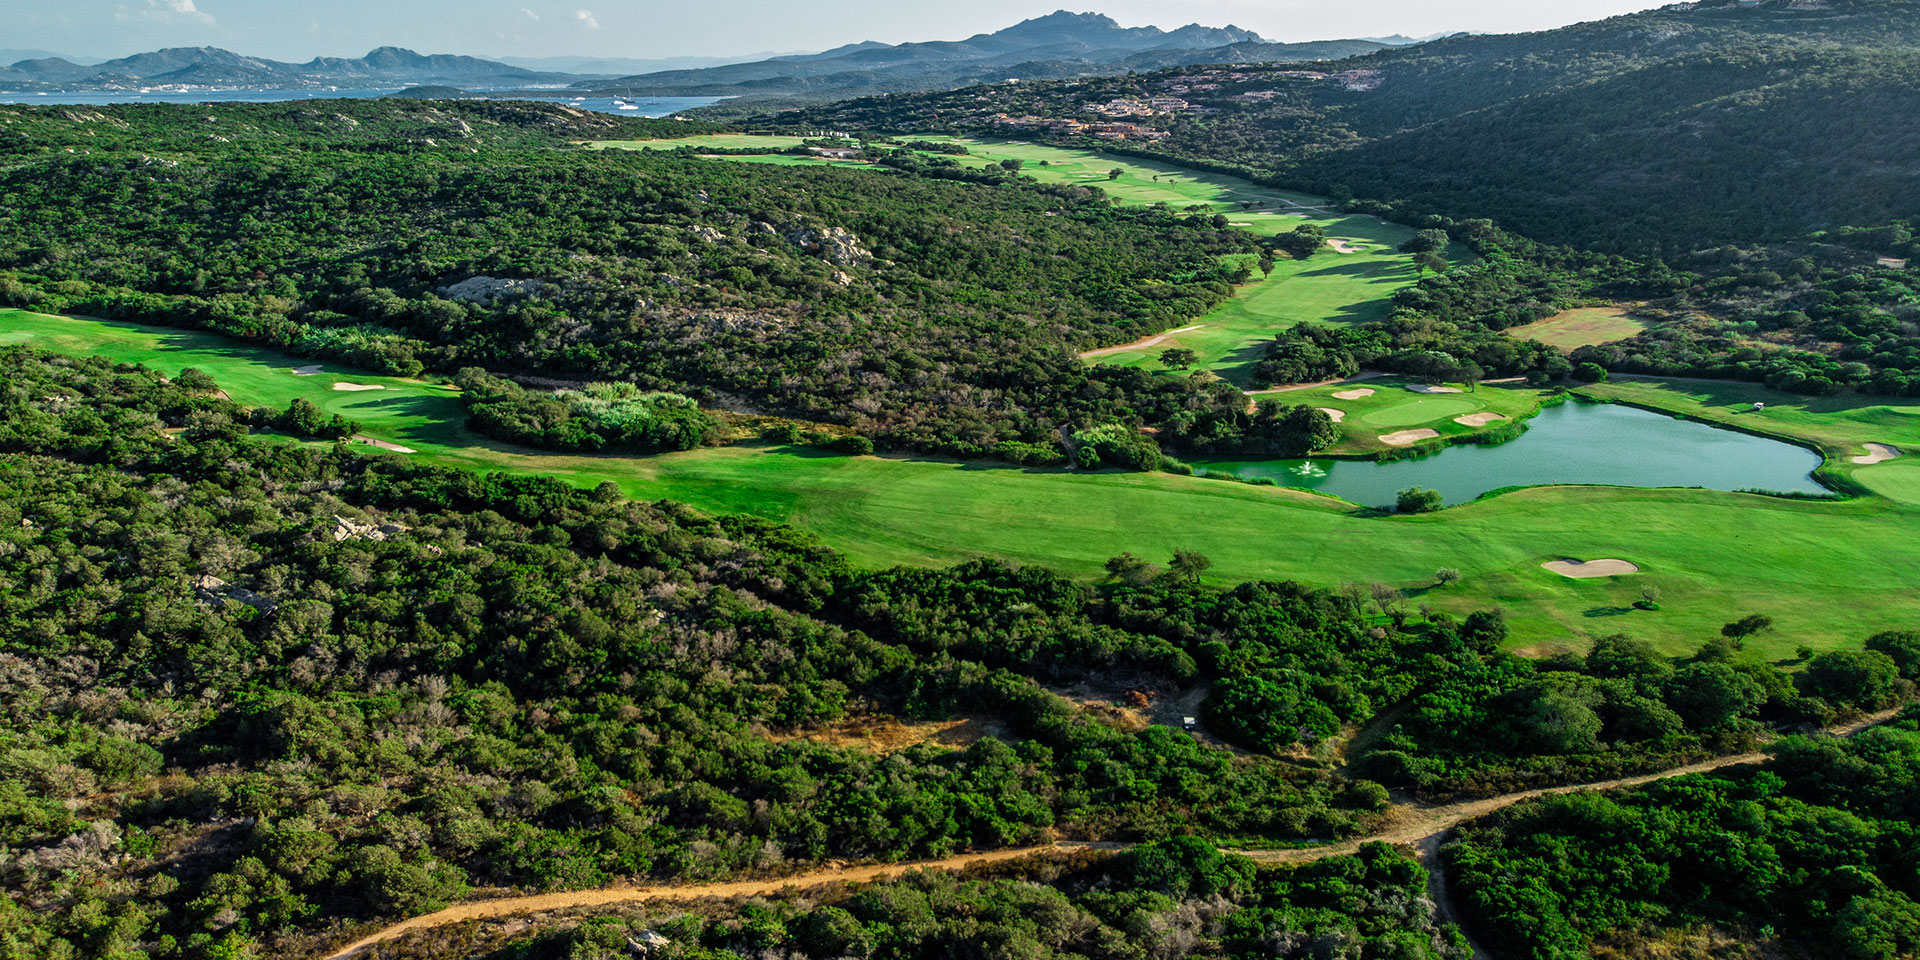 Stroll along trails or play a round of golf. (Photo: Marriott International)